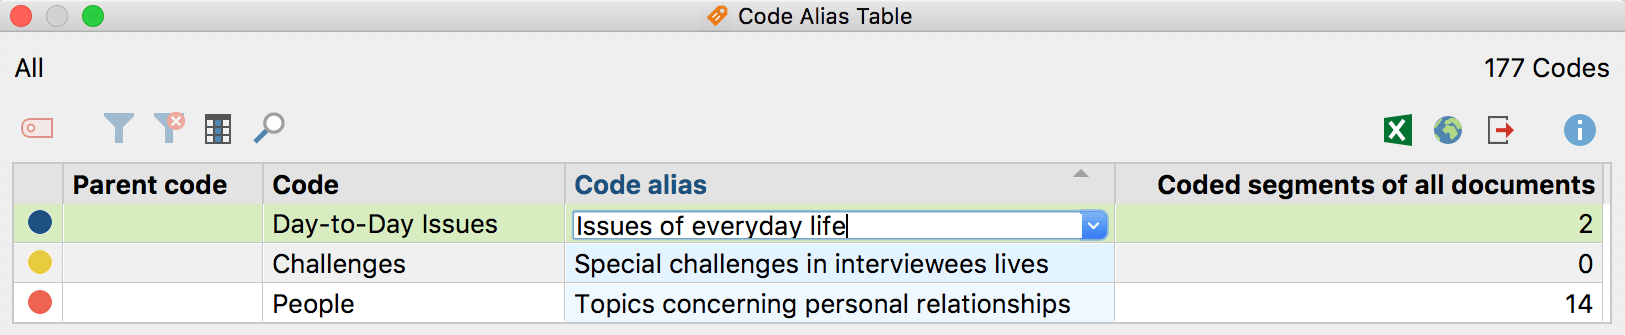 Code Alias Table